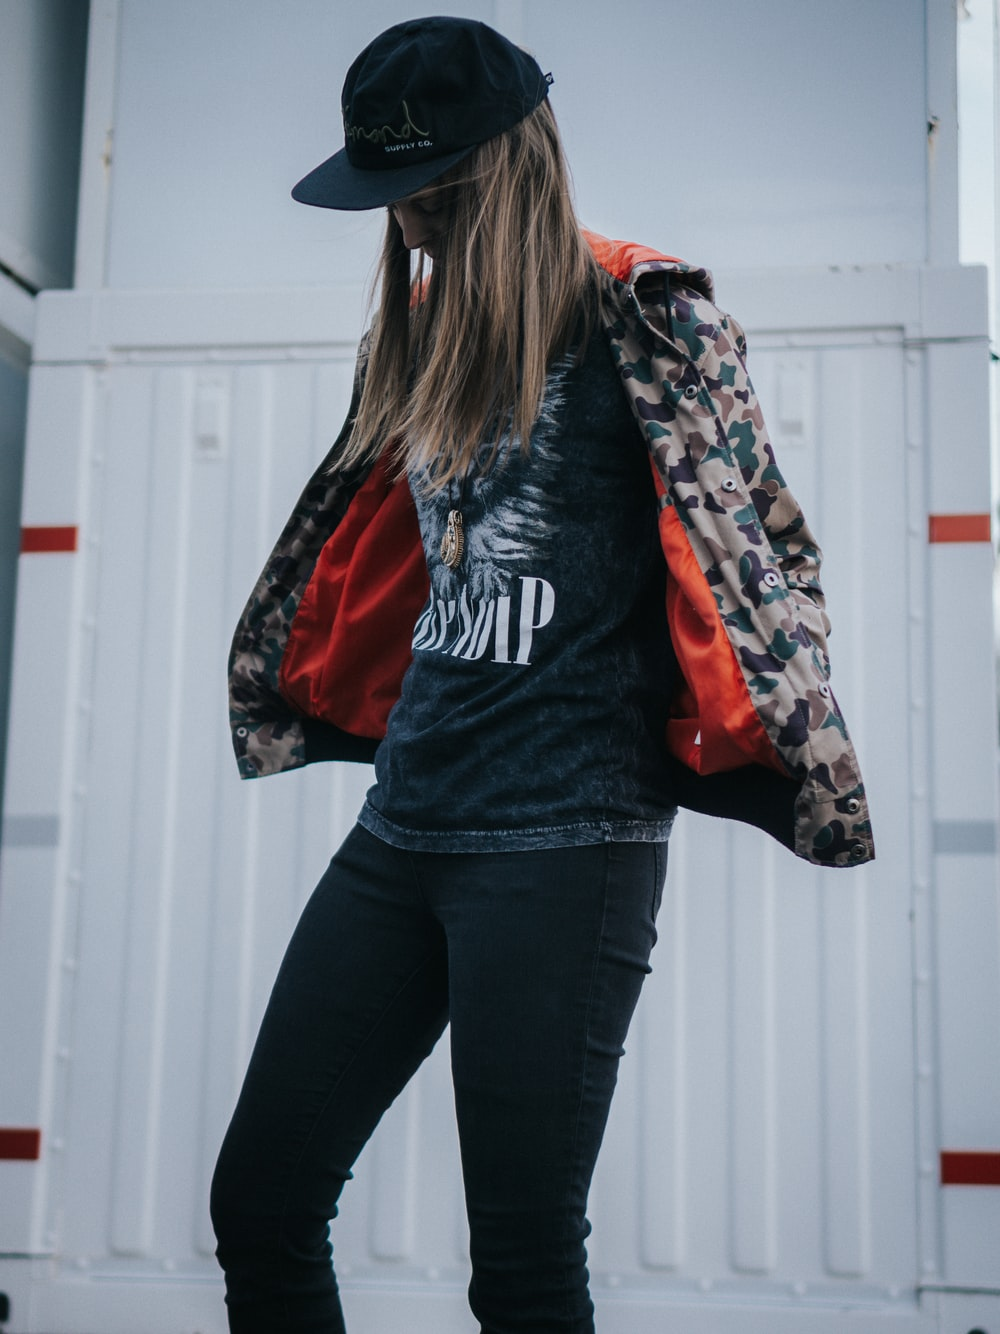 woman in black and red jacket and black pants wearing black cowboy hat